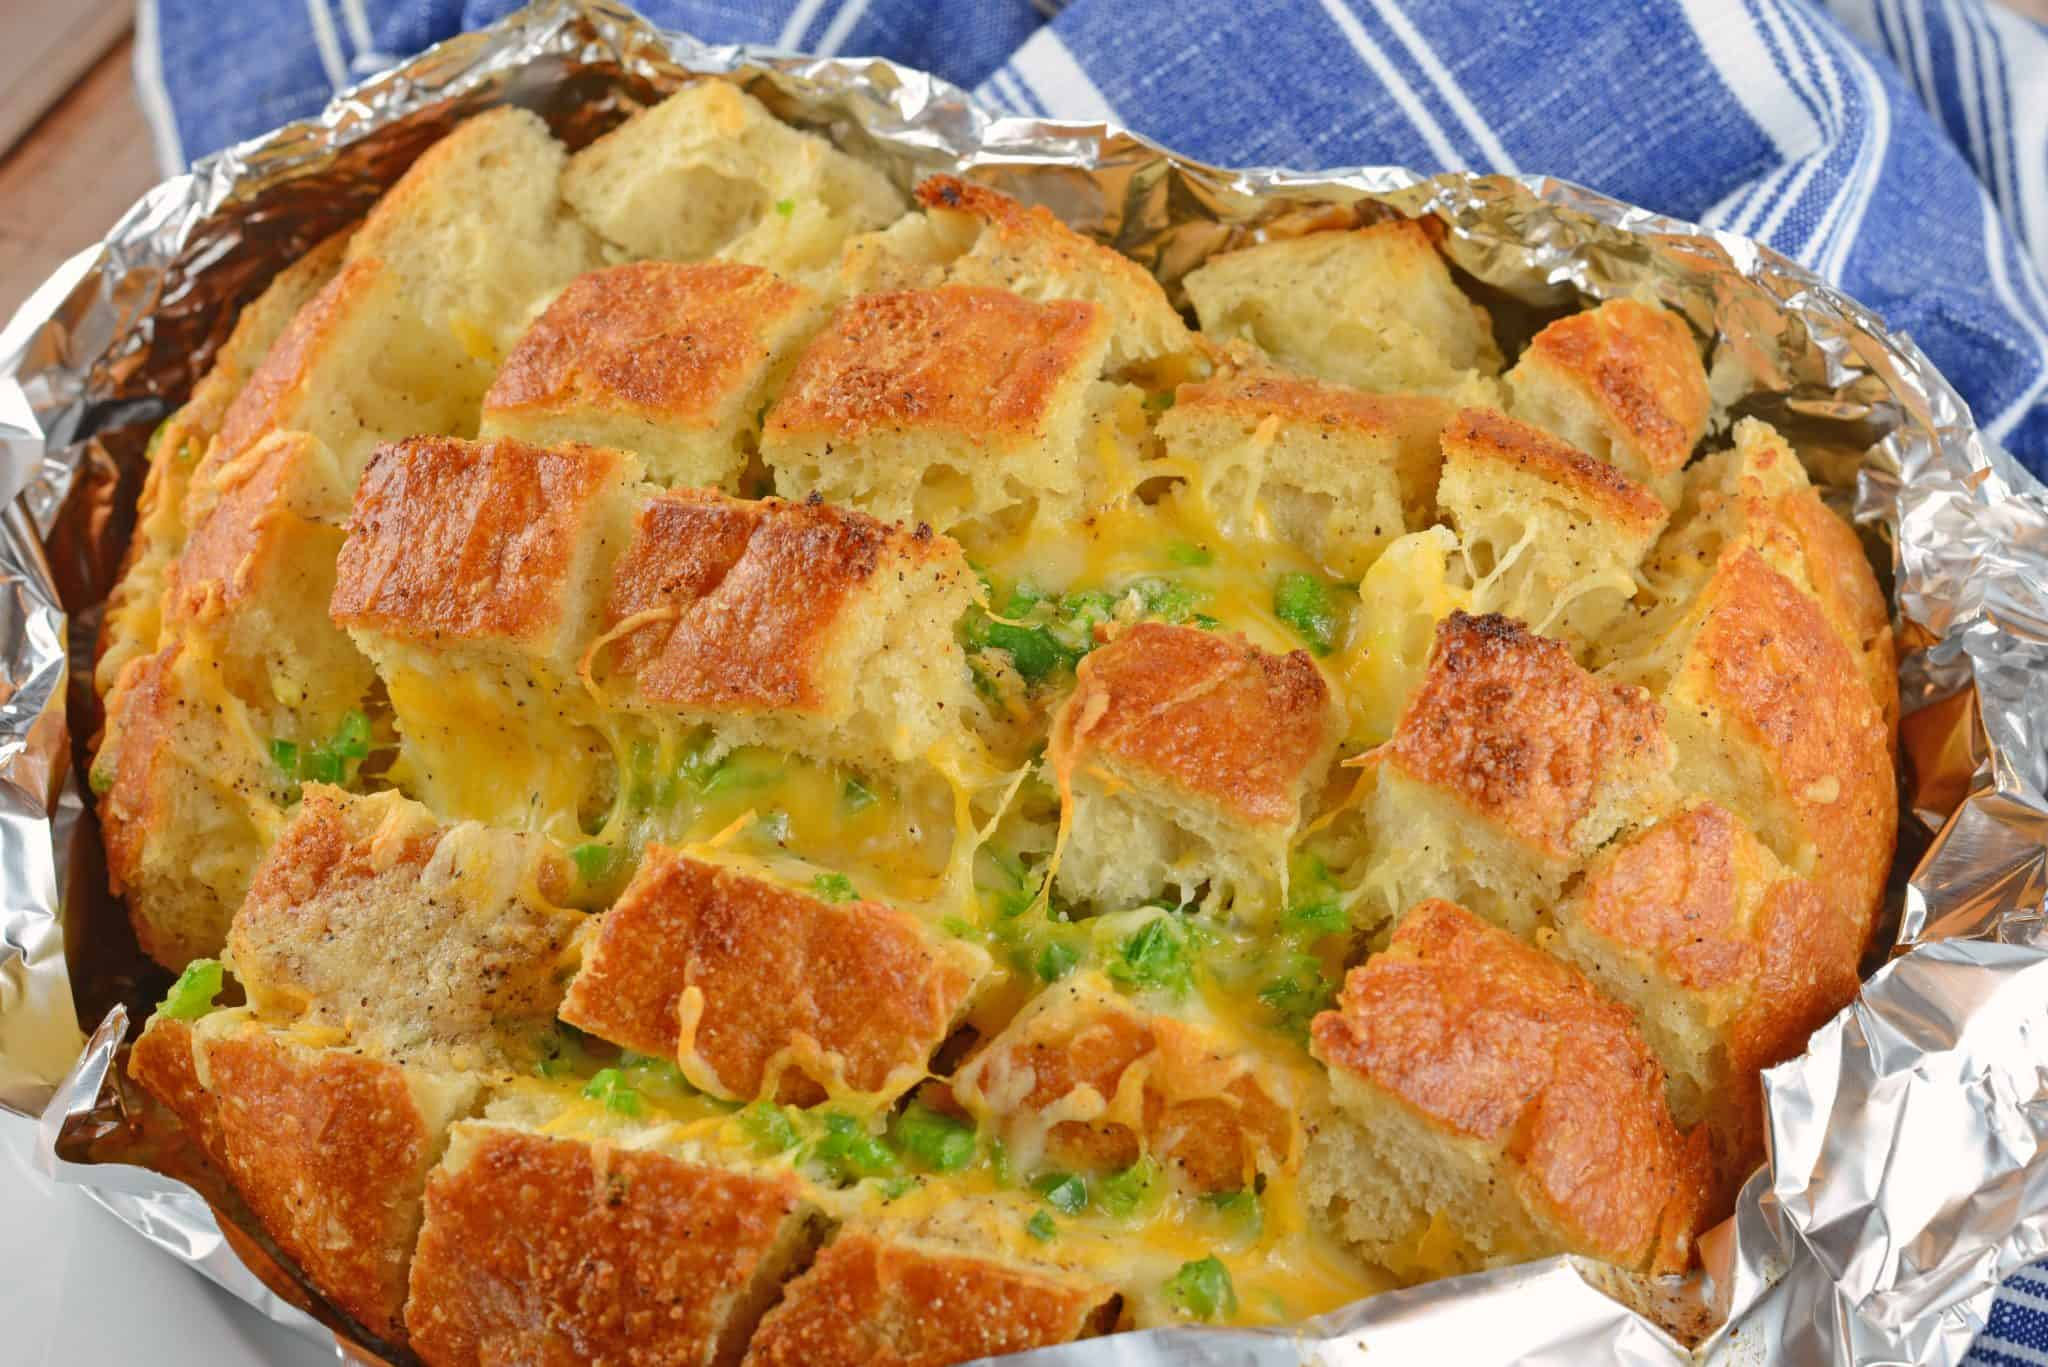 Jalapeno Popper Pull Apart Bread is spicy, cheesy, and perfect for any occasion. Use it as an appetizer, side dish or a snack! #jalapenopopperpullapartbread #jalapenopopper #cheesybread www.savoryexperiments.com